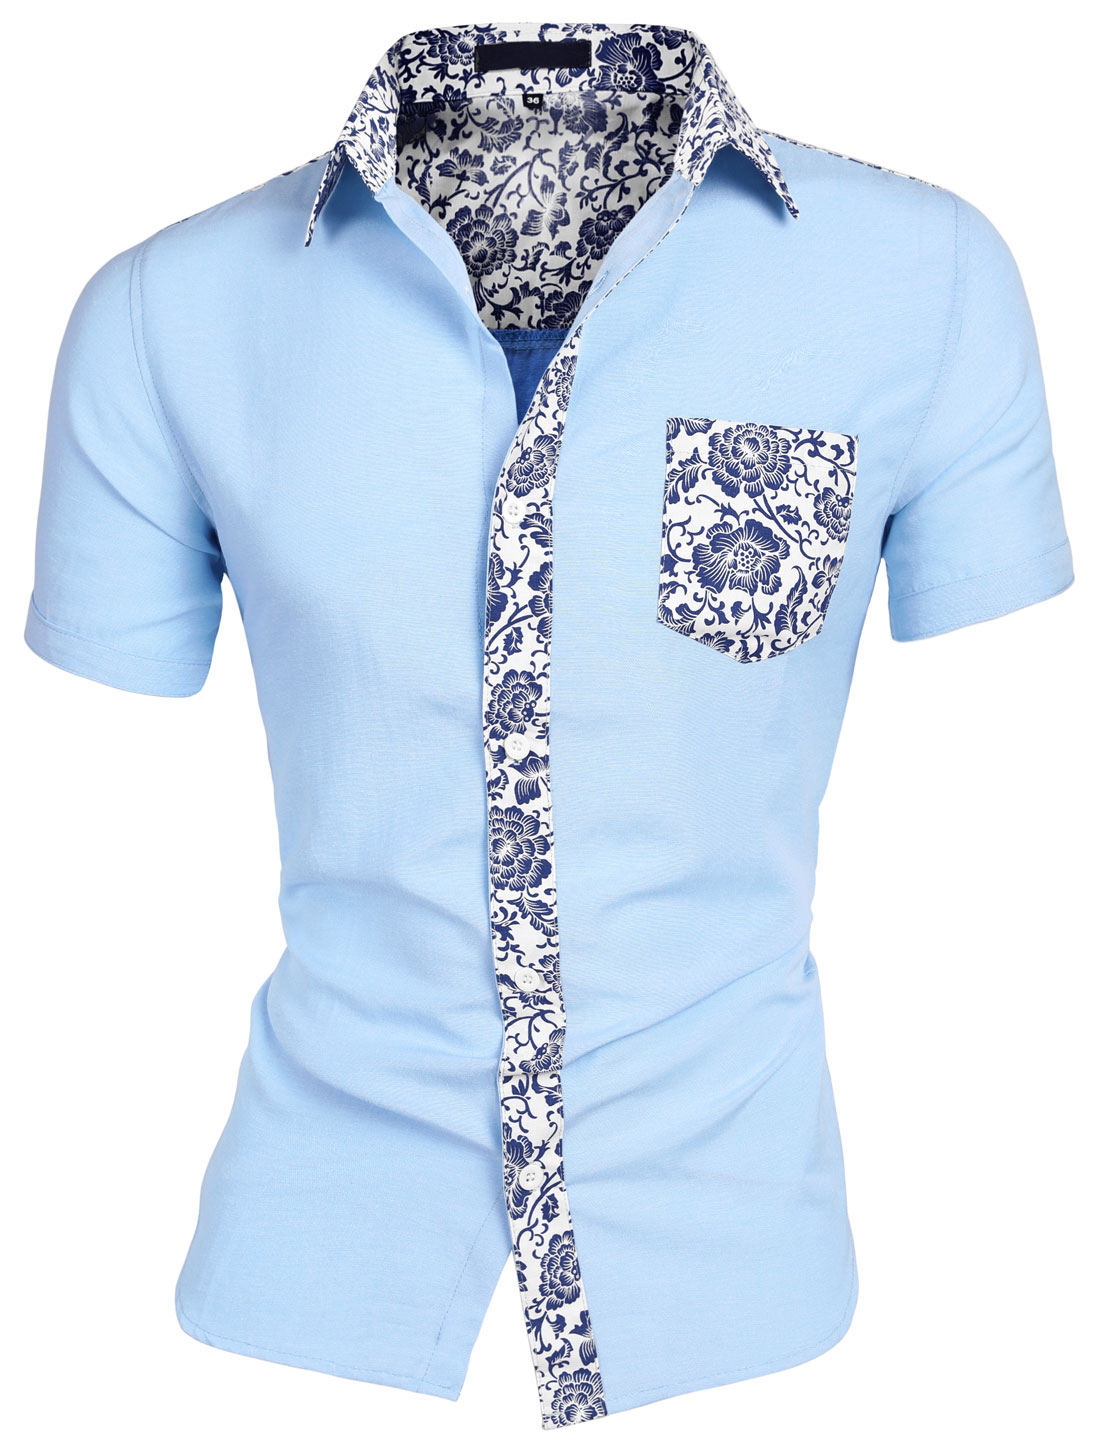 Mens Short Sleeve Point Collar Floral Print Slim Fit Shirts Blue L